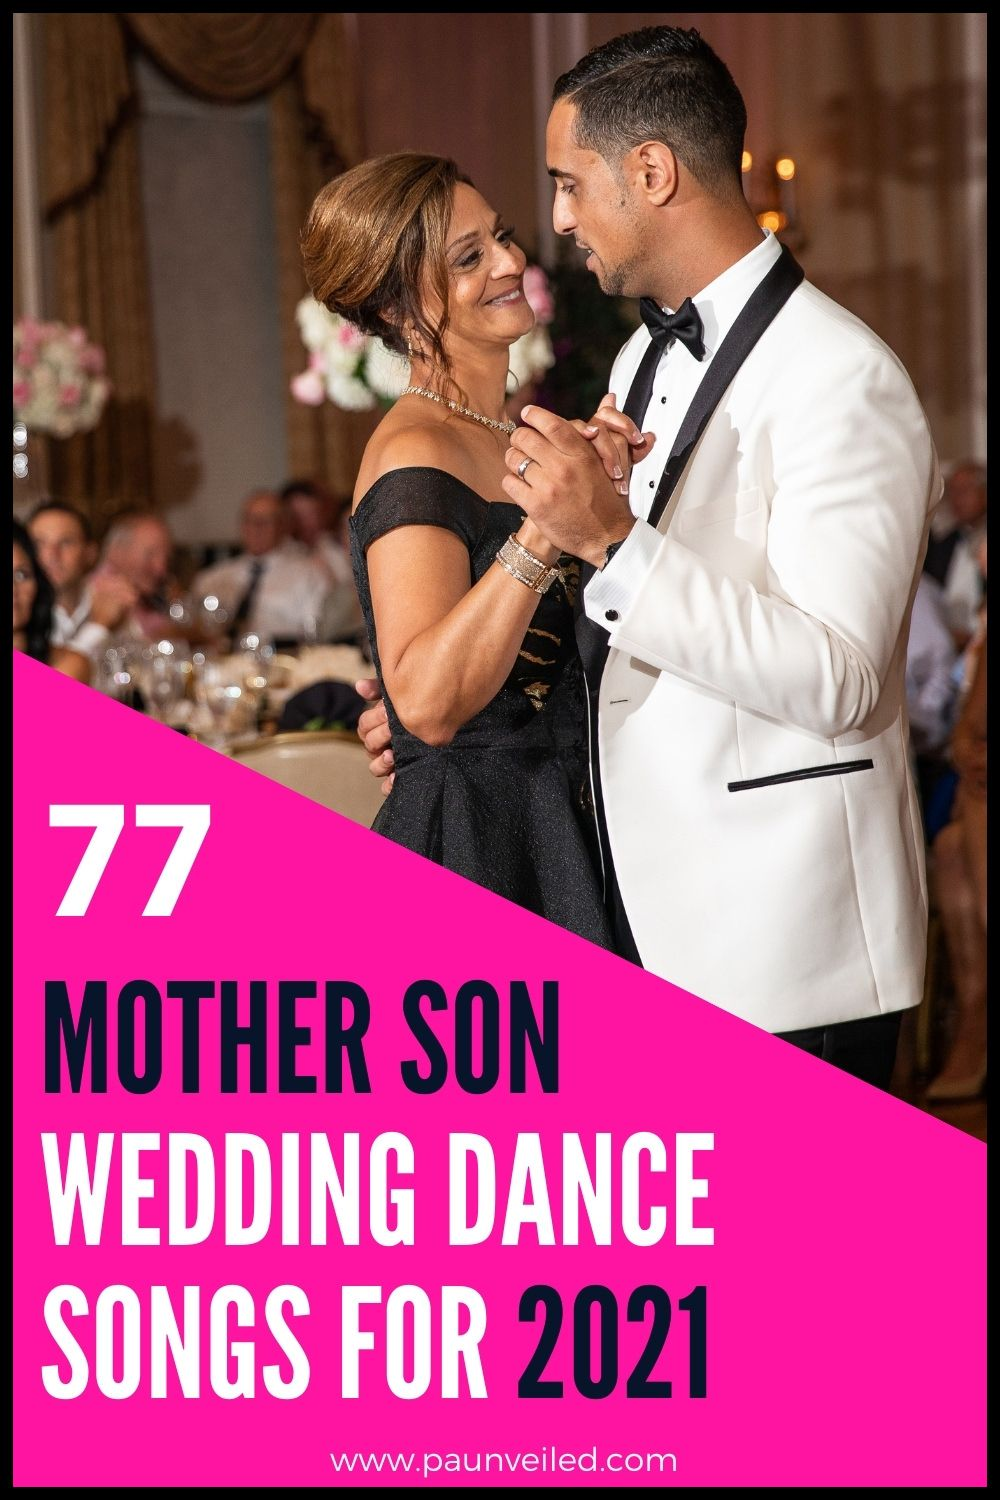 Mother Son Wedding Dance Songs For 2021 77 Of The Best In 2020 Wedding Dance Songs Mother Son Wedding Dance Mother Son Dance Songs